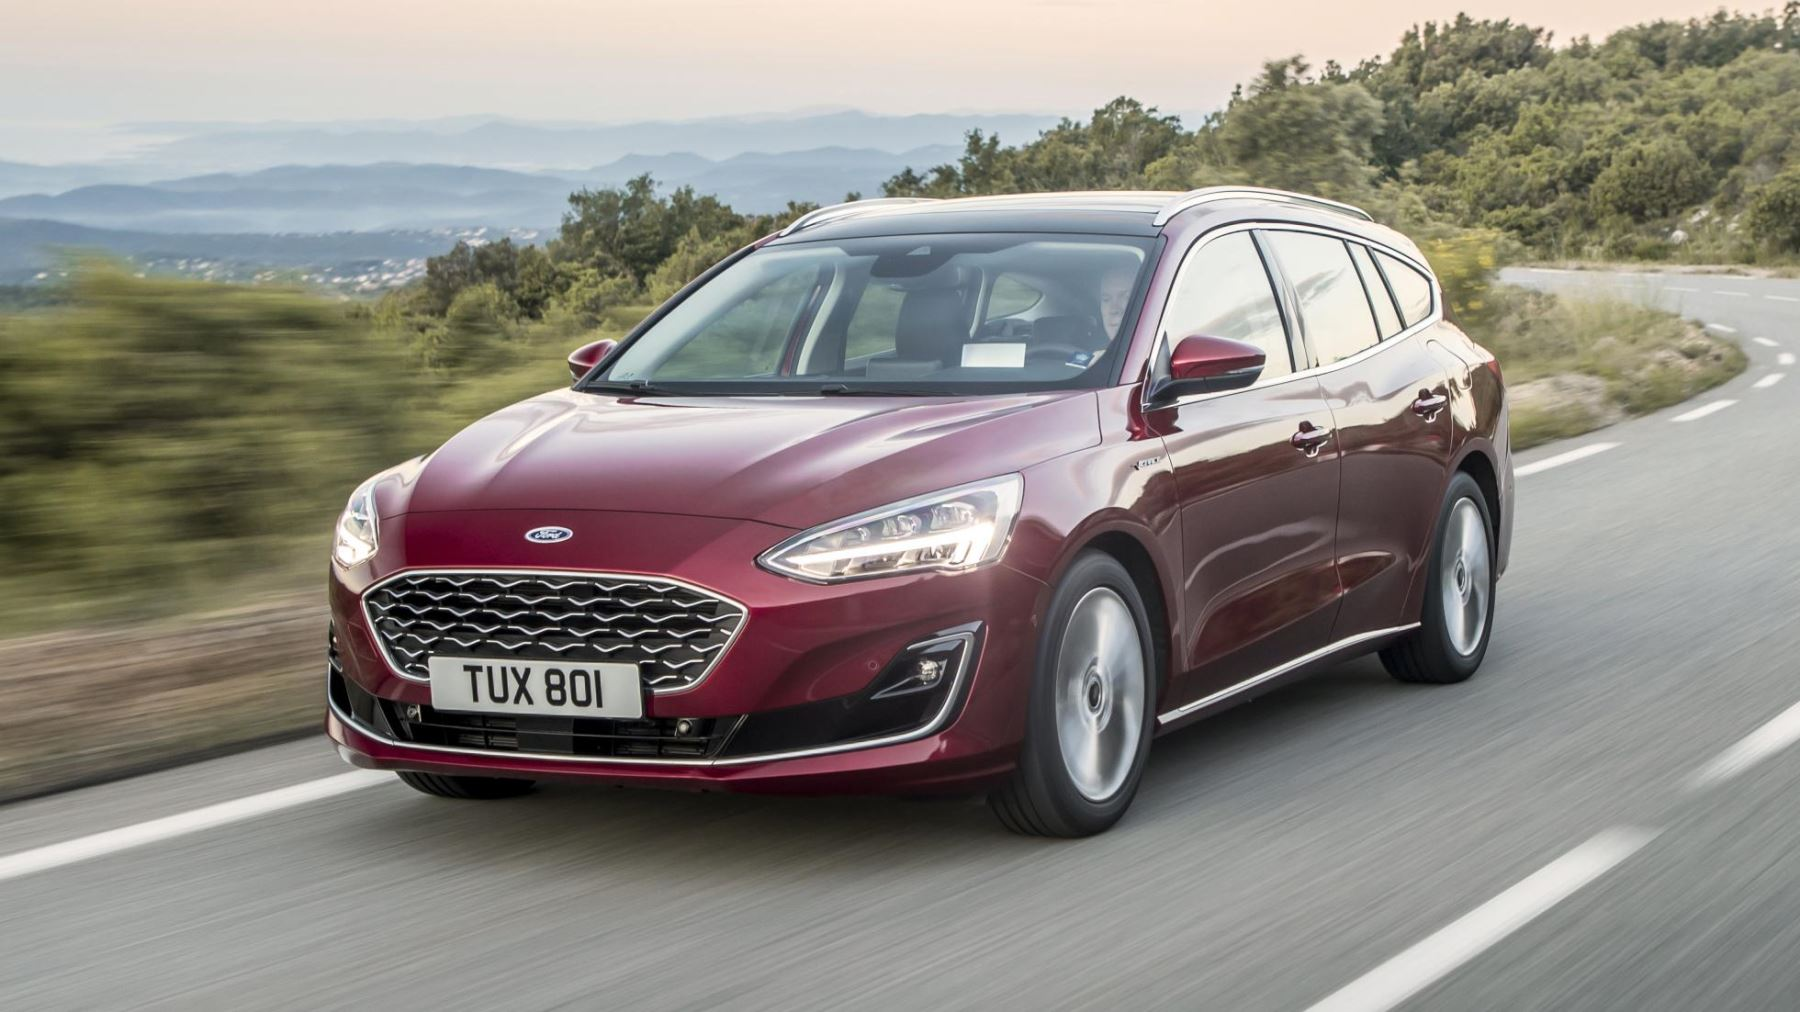 Ford Focus St-Line 1.5 Diesel 120ps Diesel 5 door Estate (2019)